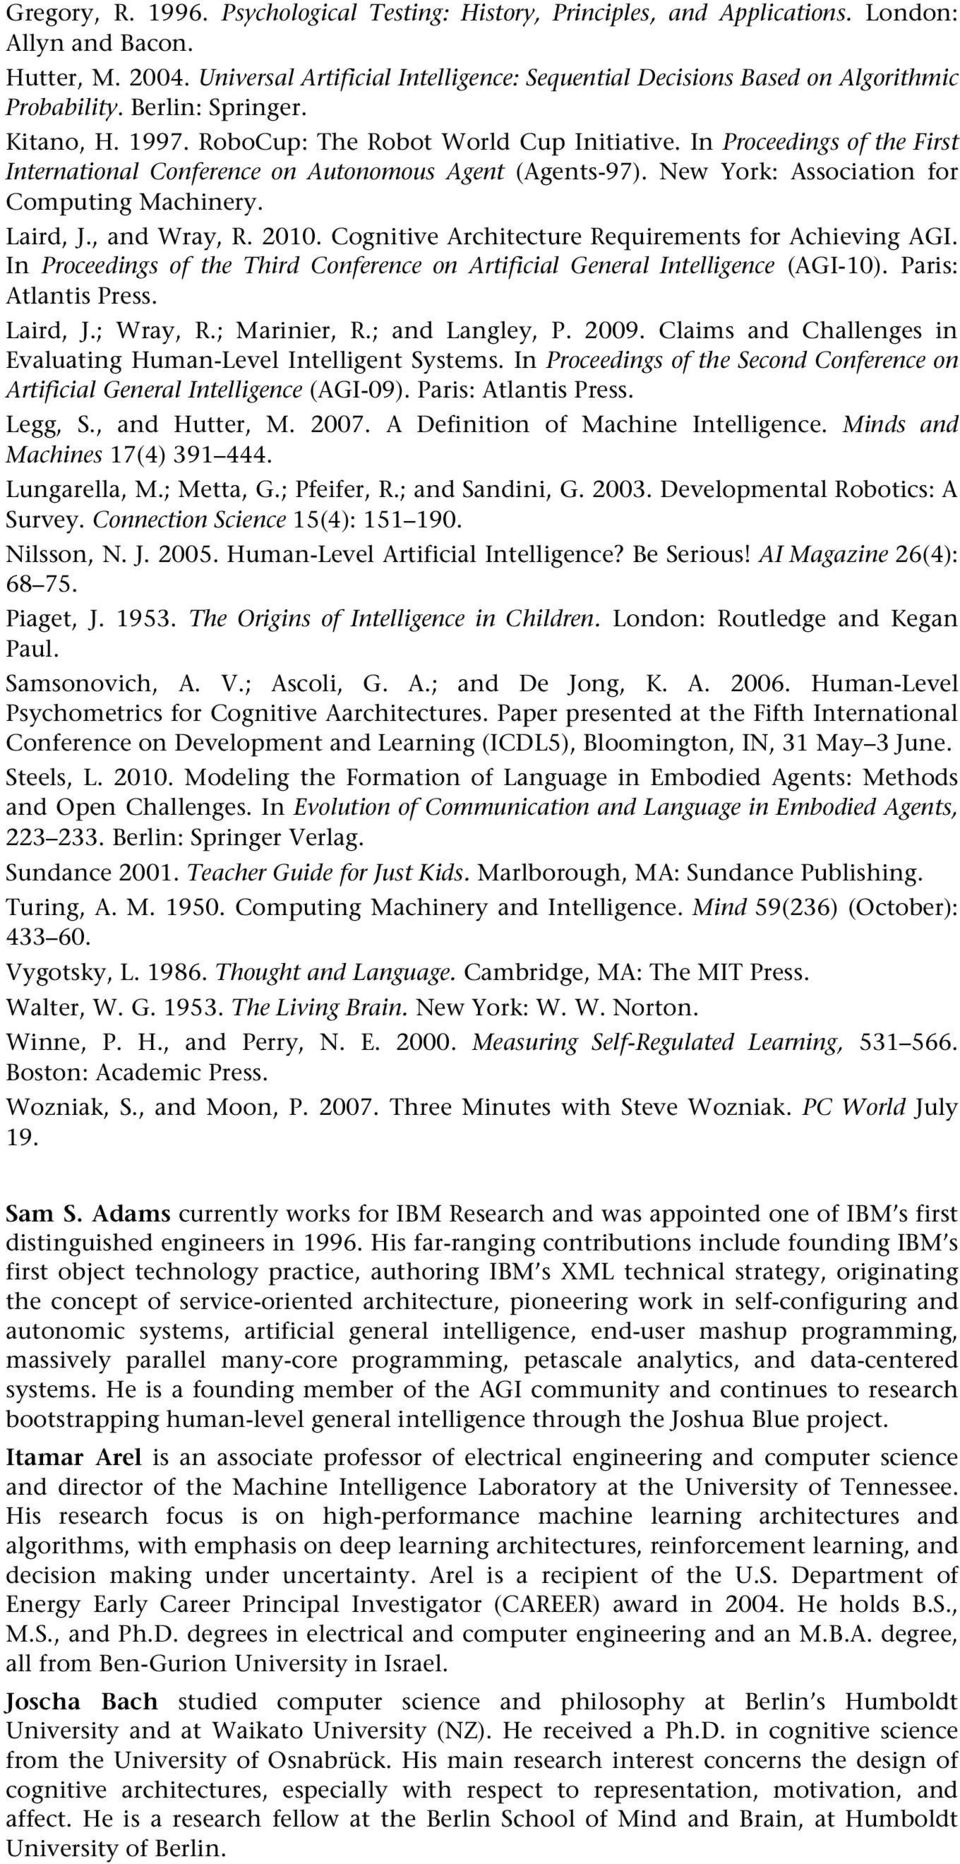 In Proceedings of the First International Conference on Autonomous Agent (Agents-97). New York: Association for Computing Machinery. Laird, J., and Wray, R. 2010.